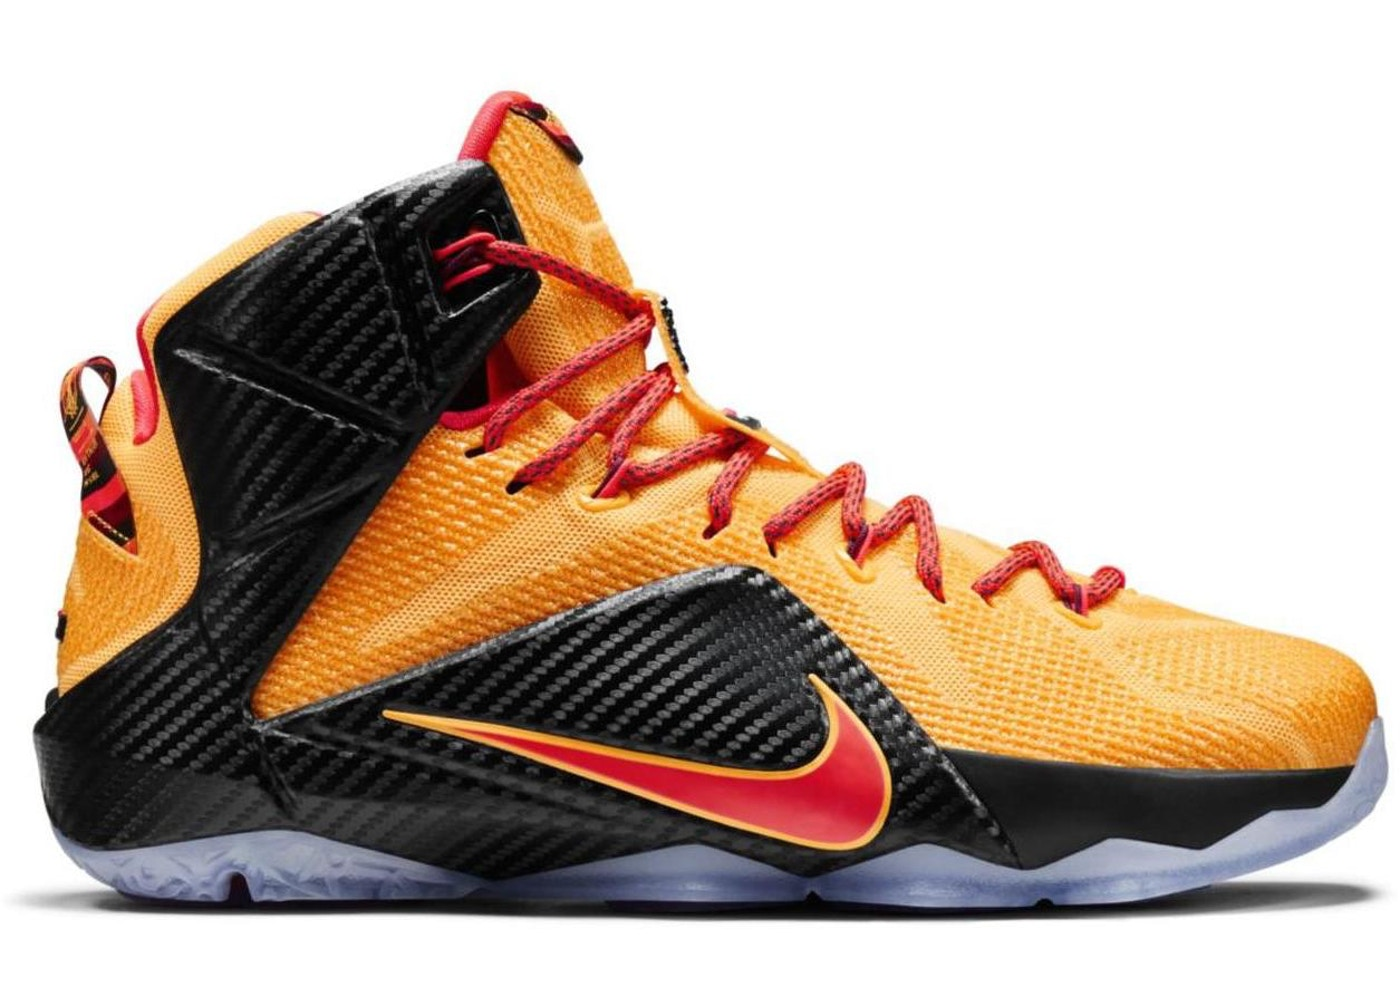 online store 0a145 2a8db Buy Nike LeBron Shoes   Deadstock Sneakers